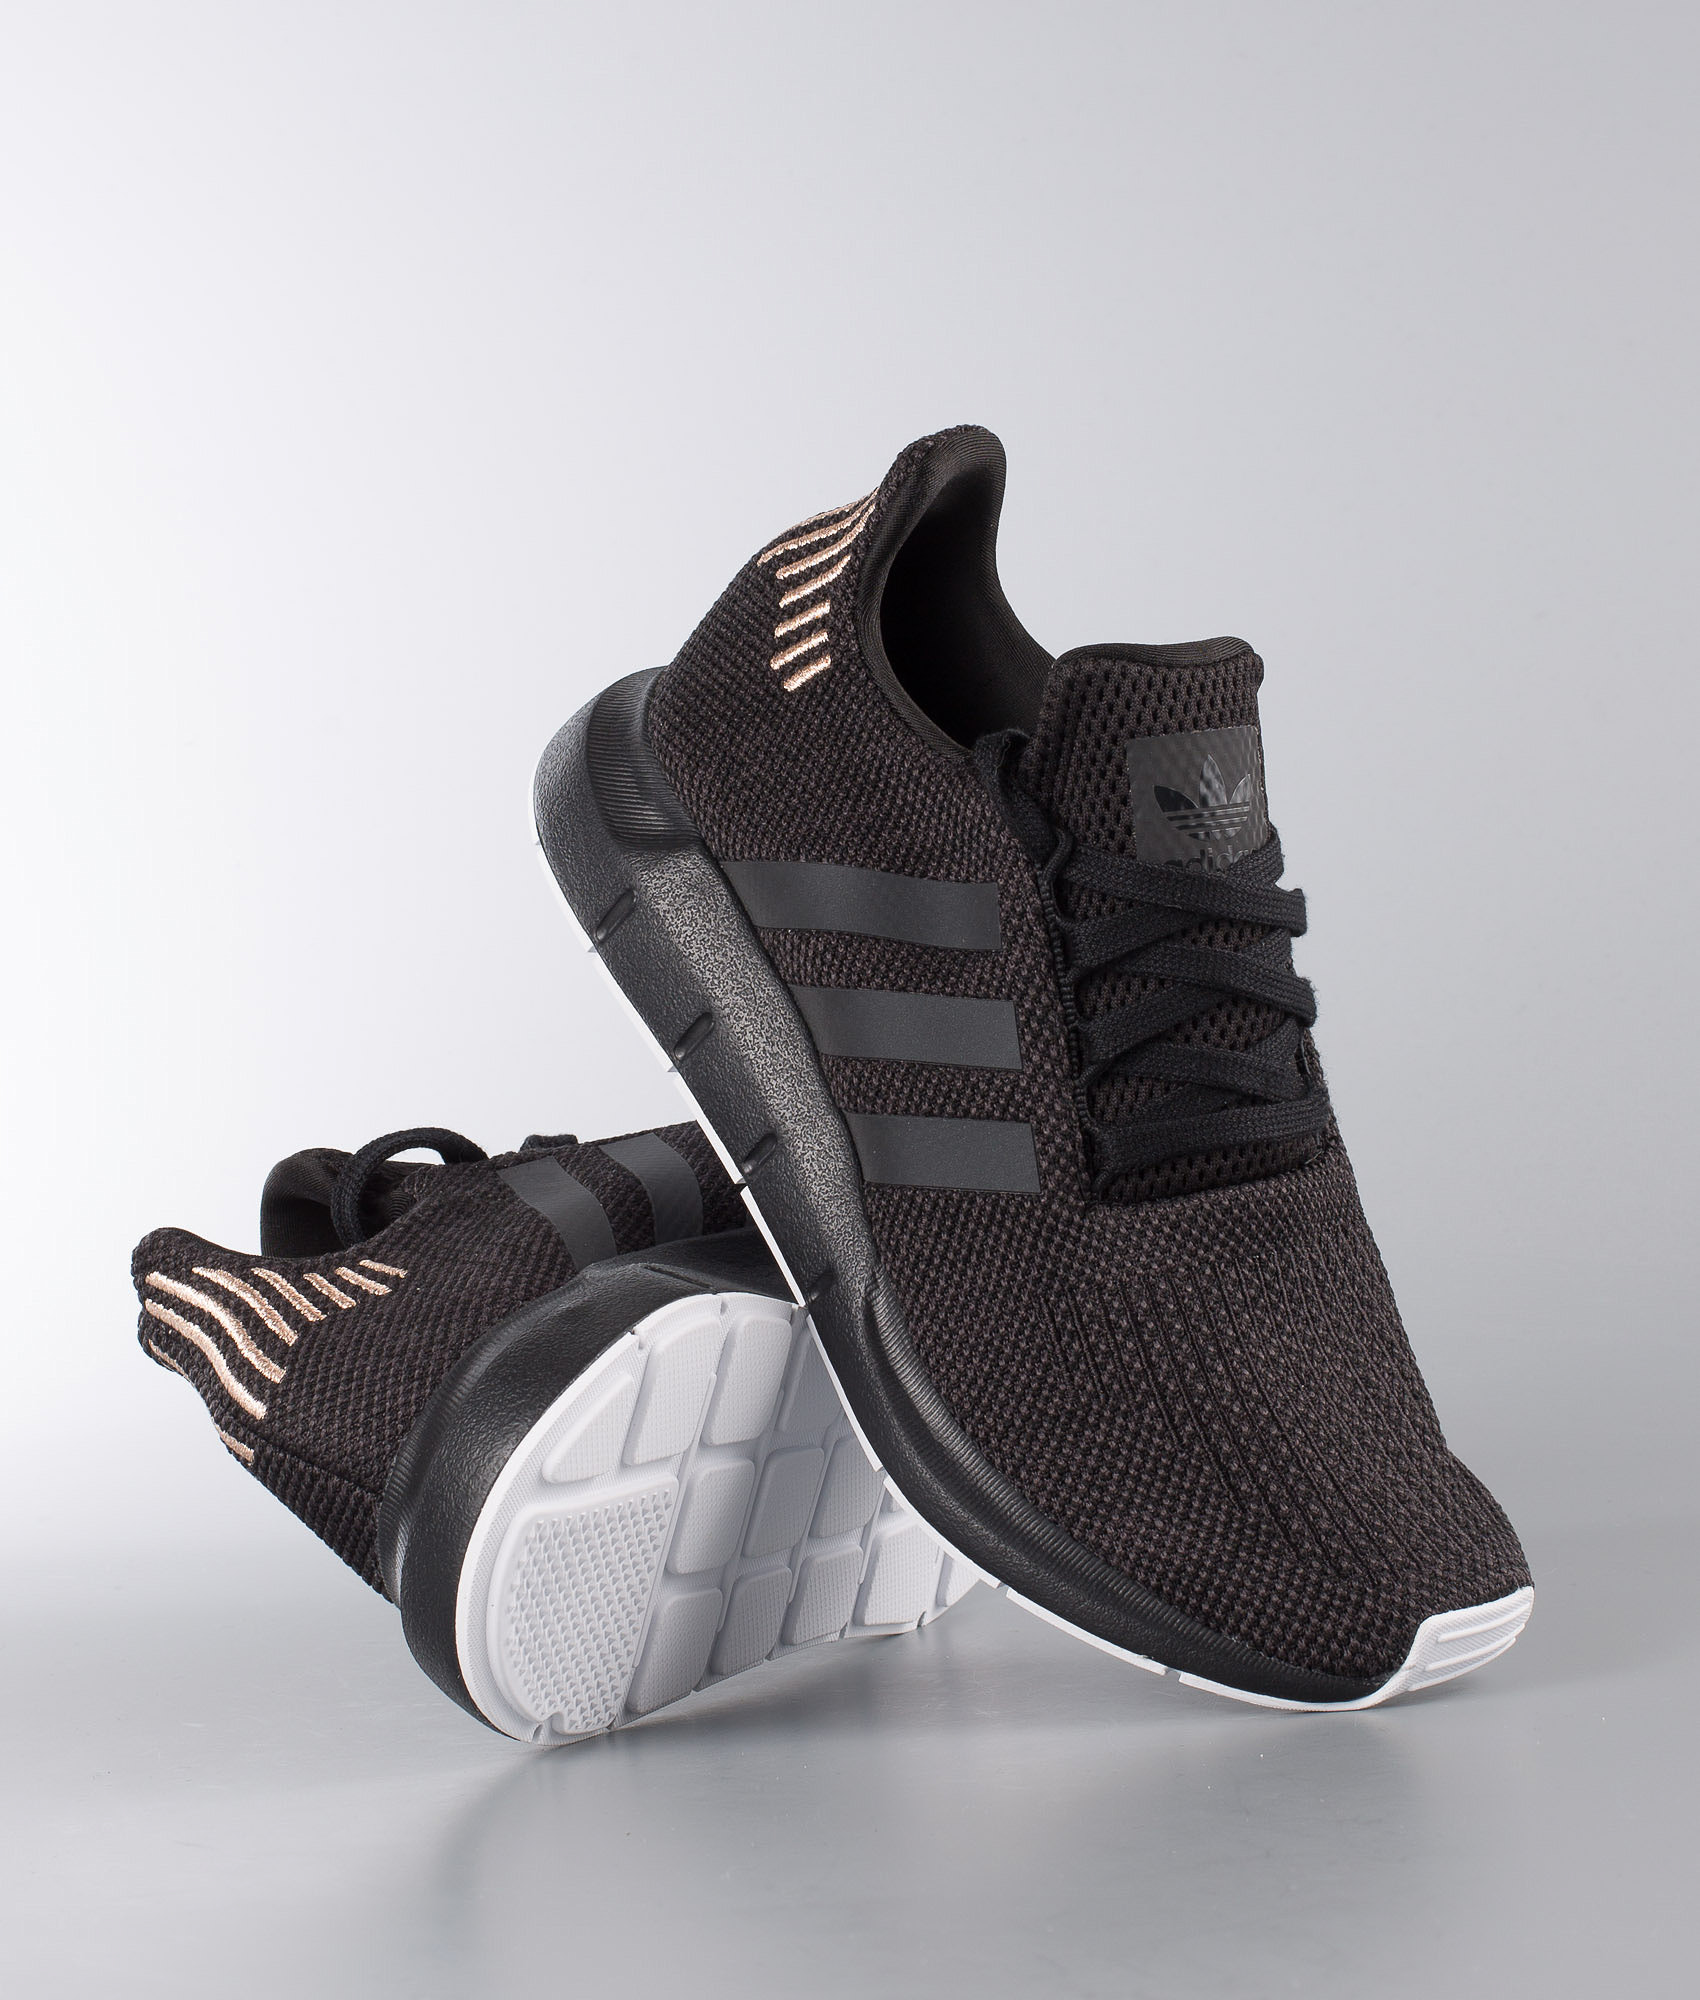 a4f90d02715a5 Adidas Originals Swift Run W Shoes Core Black Carbon Ftwr White ...